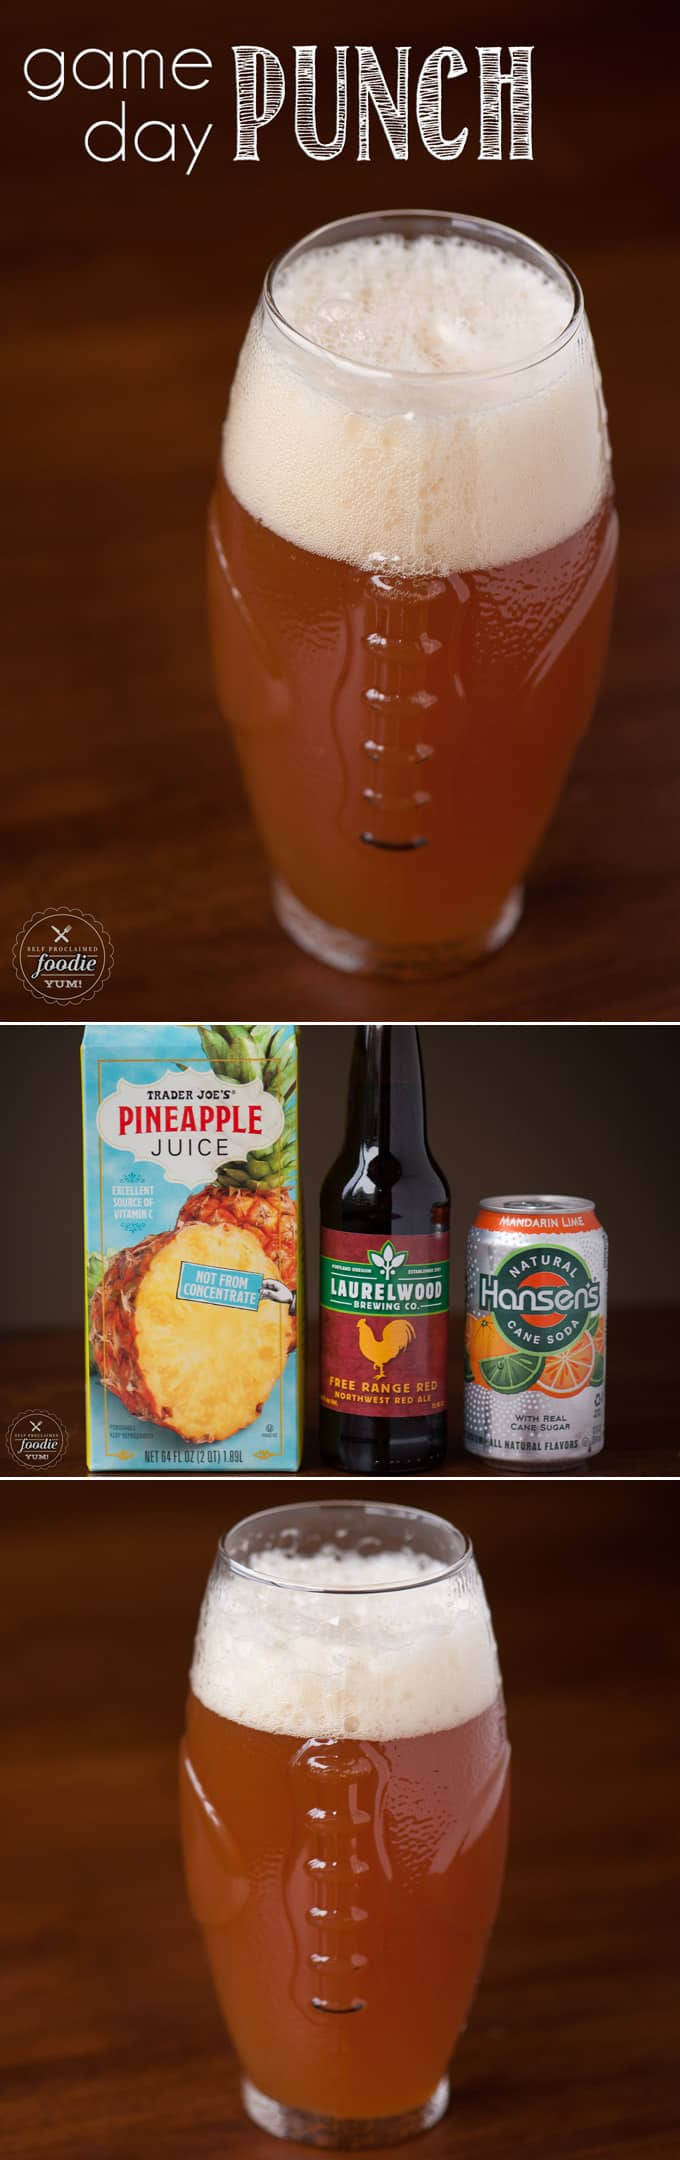 Game Day Punch is an easy to make concoction of an amber ale, pineapple juice, and a citrus-y soda that makes for the perfect game day or tailgating drink.